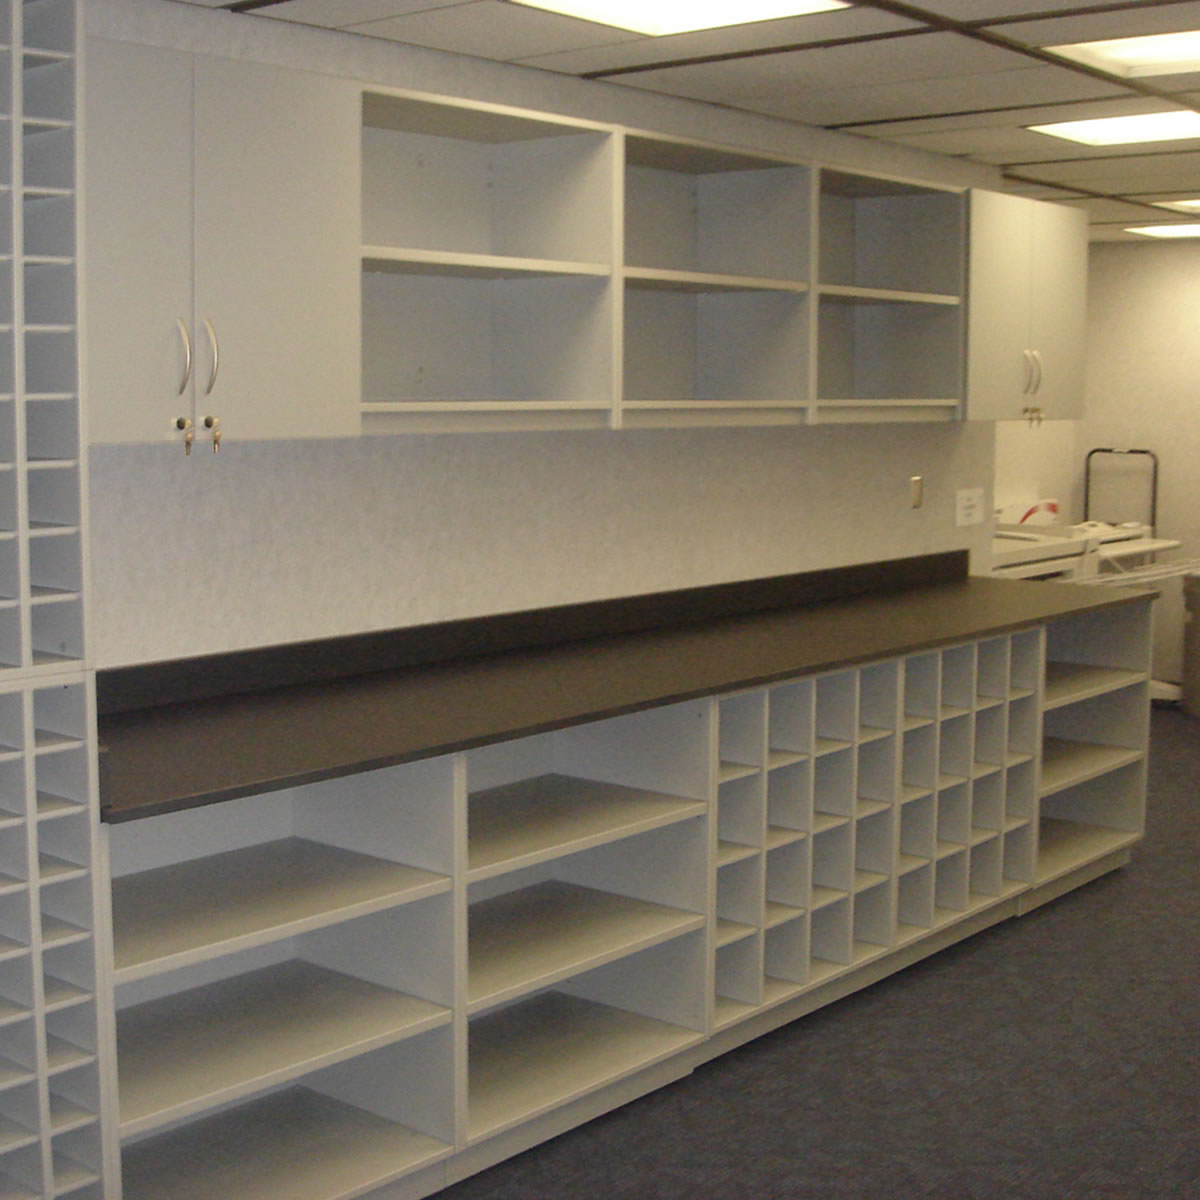 Architect Furniture architect storage systems furniture fixtures & equipment